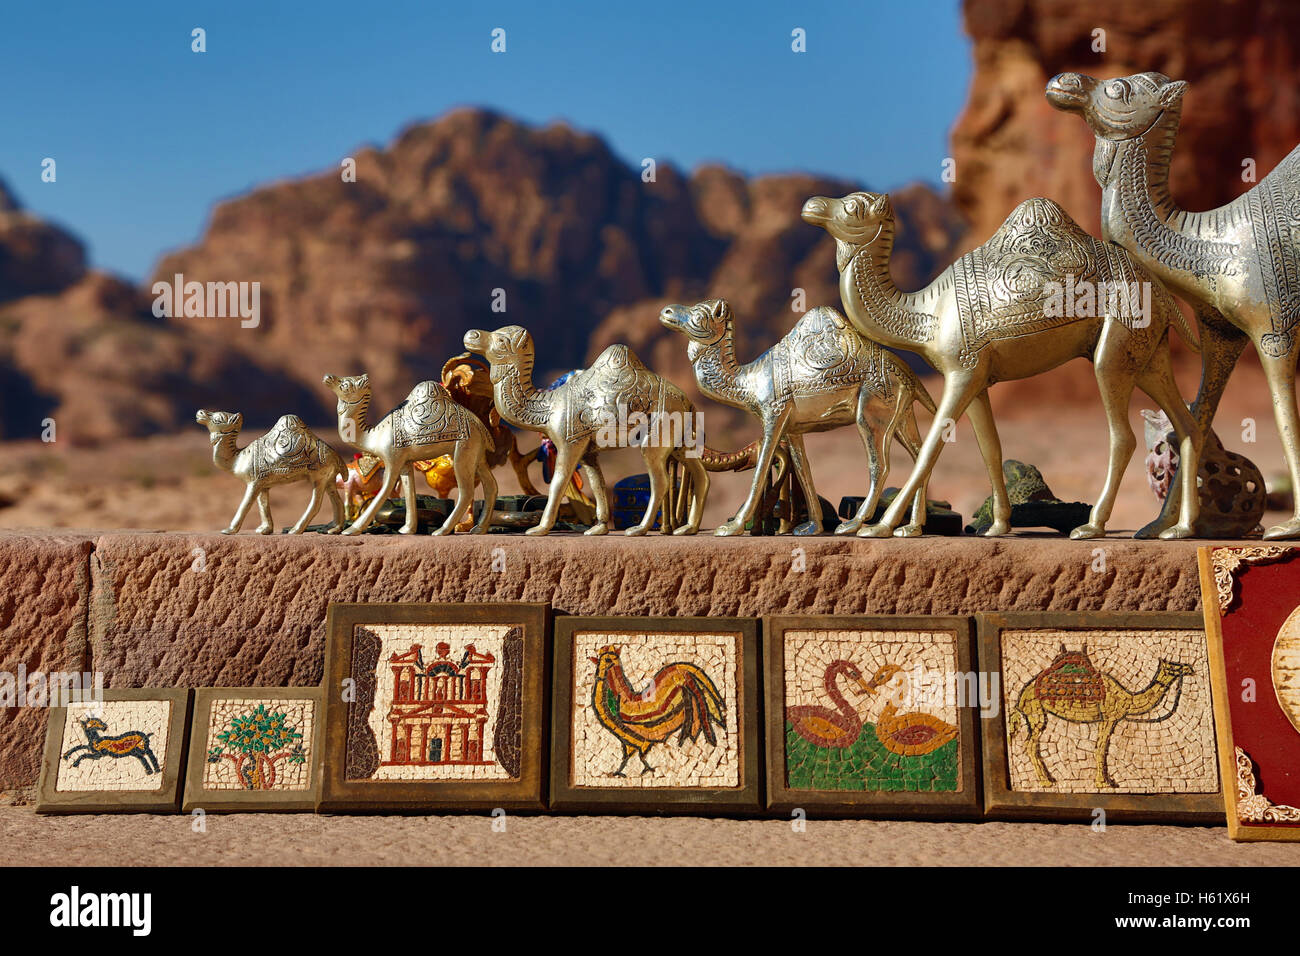 Camel souvenirs on sale at the Urn Tomb of the Royal Tombs in the rock city of Petra, Jordan - Stock Image